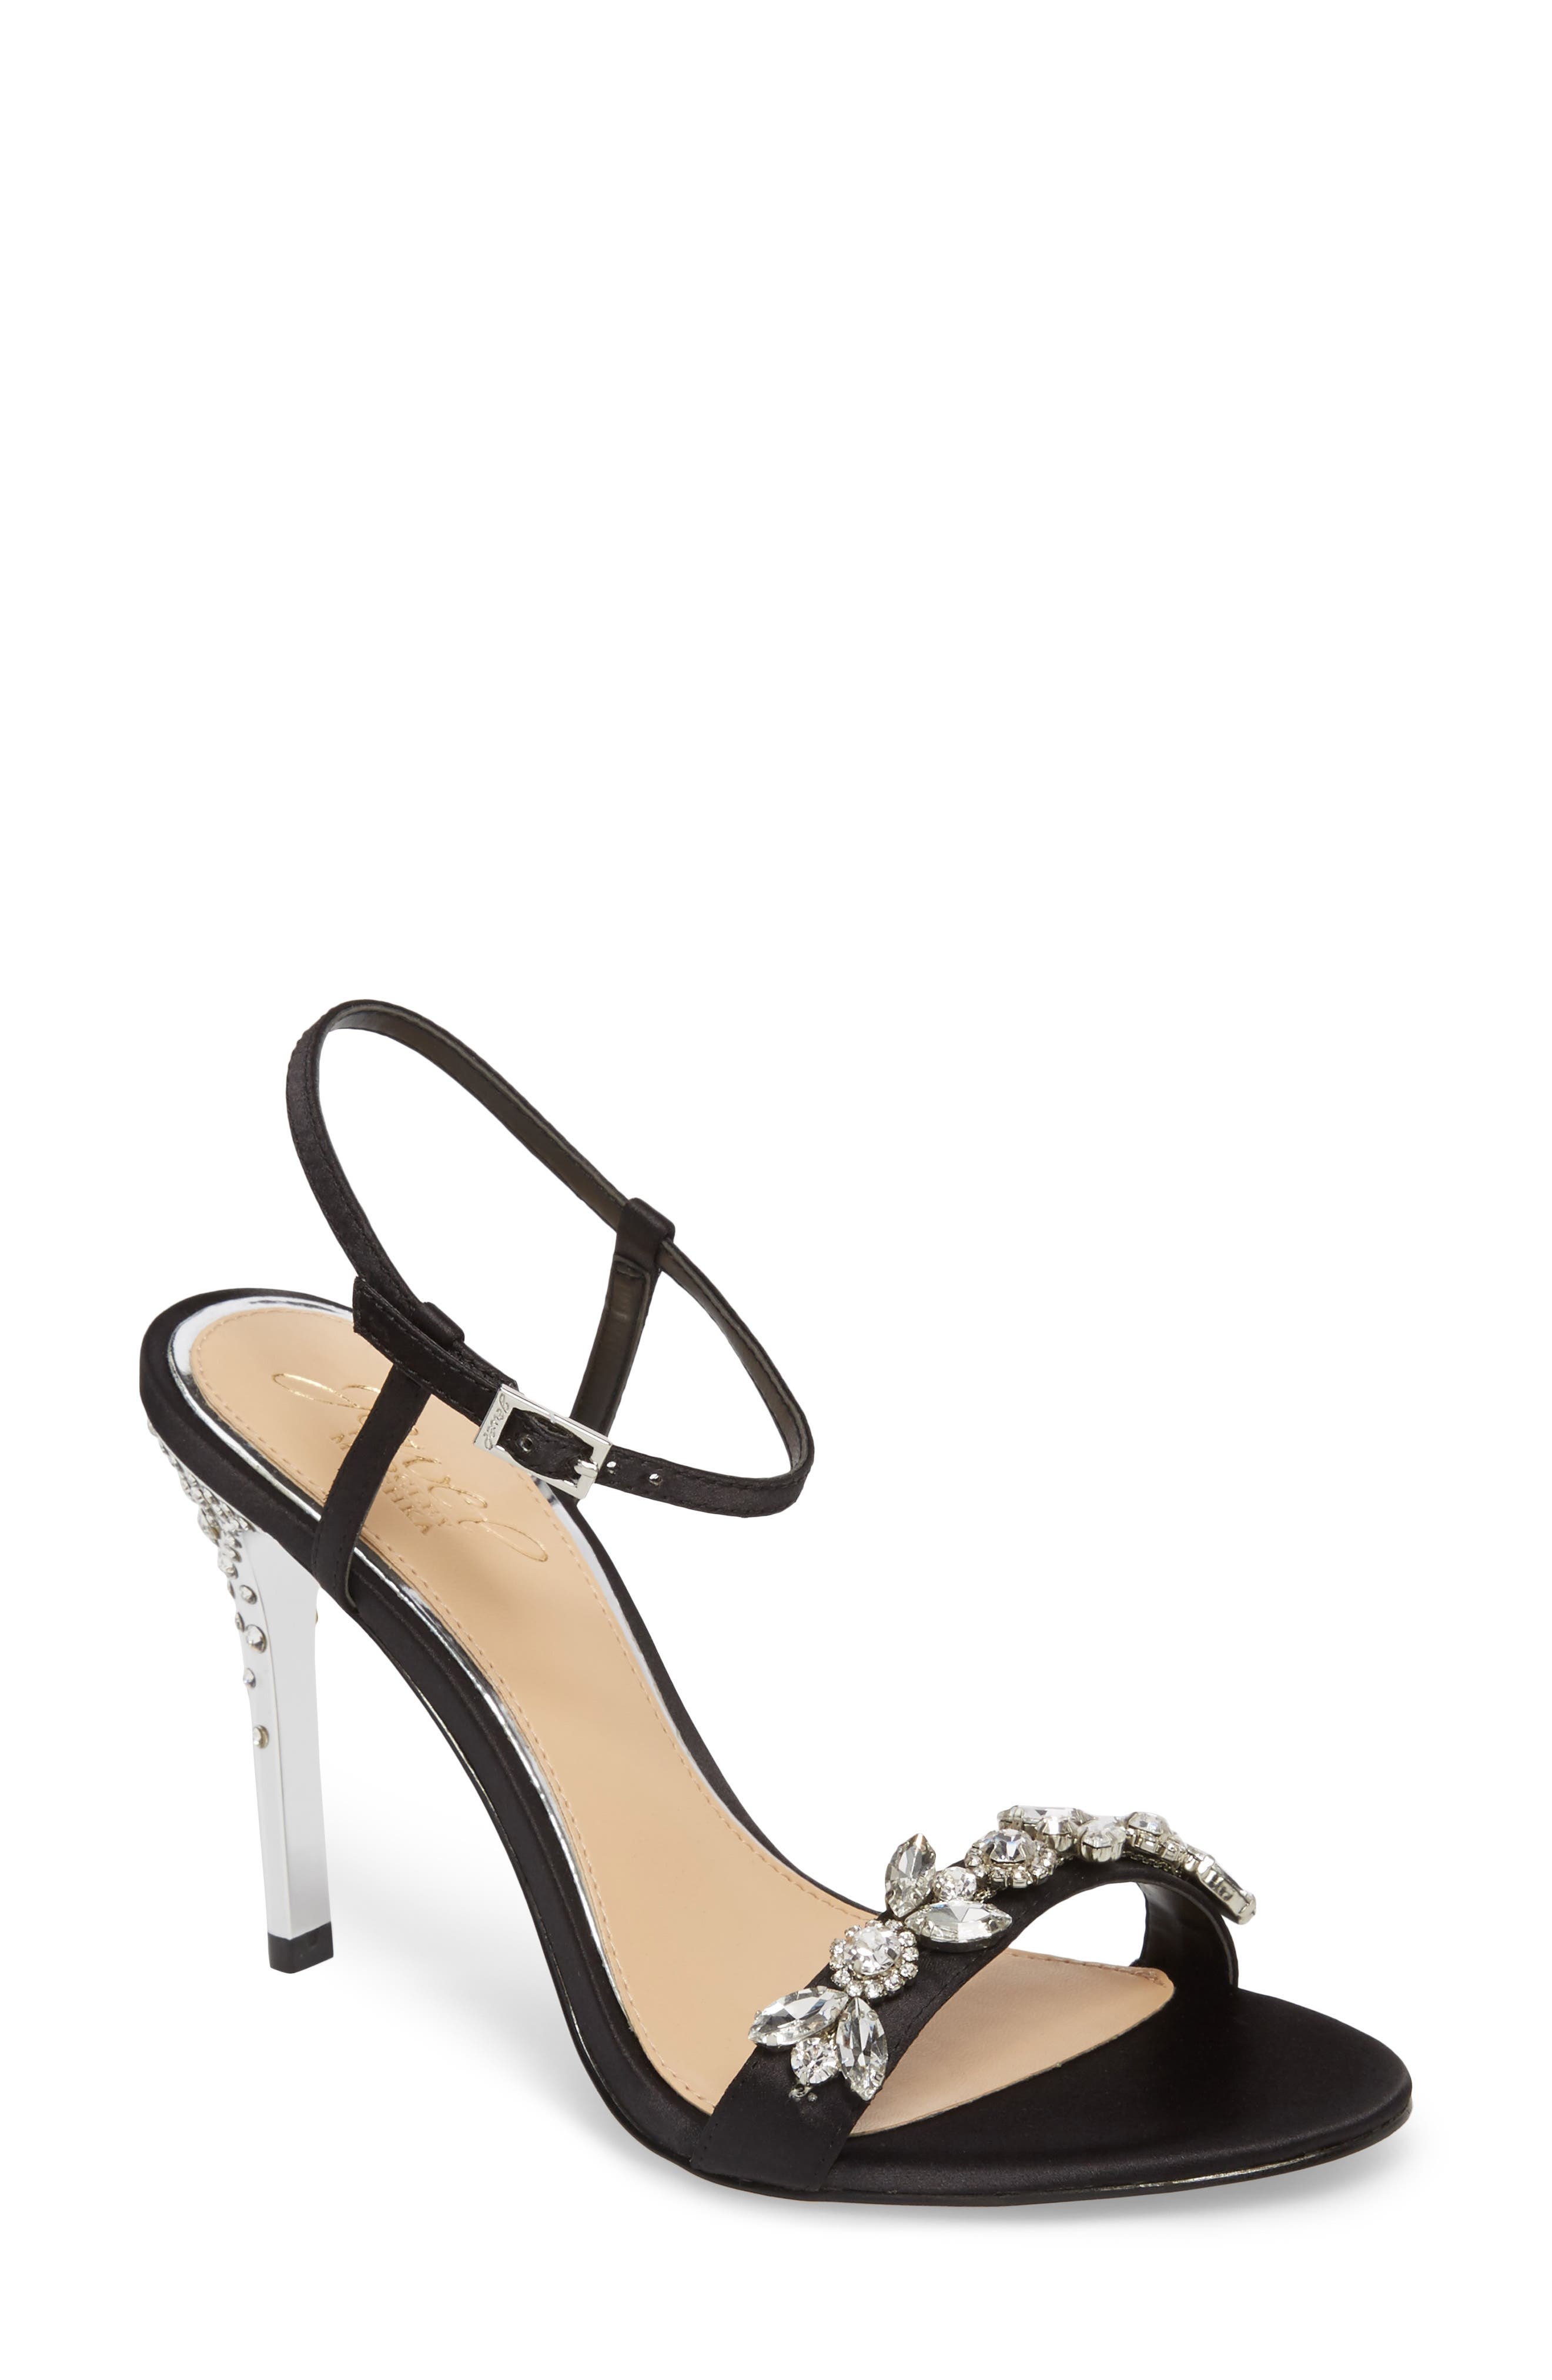 Tex Ankle Strap Sandal,                         Main,                         color, Black Satin